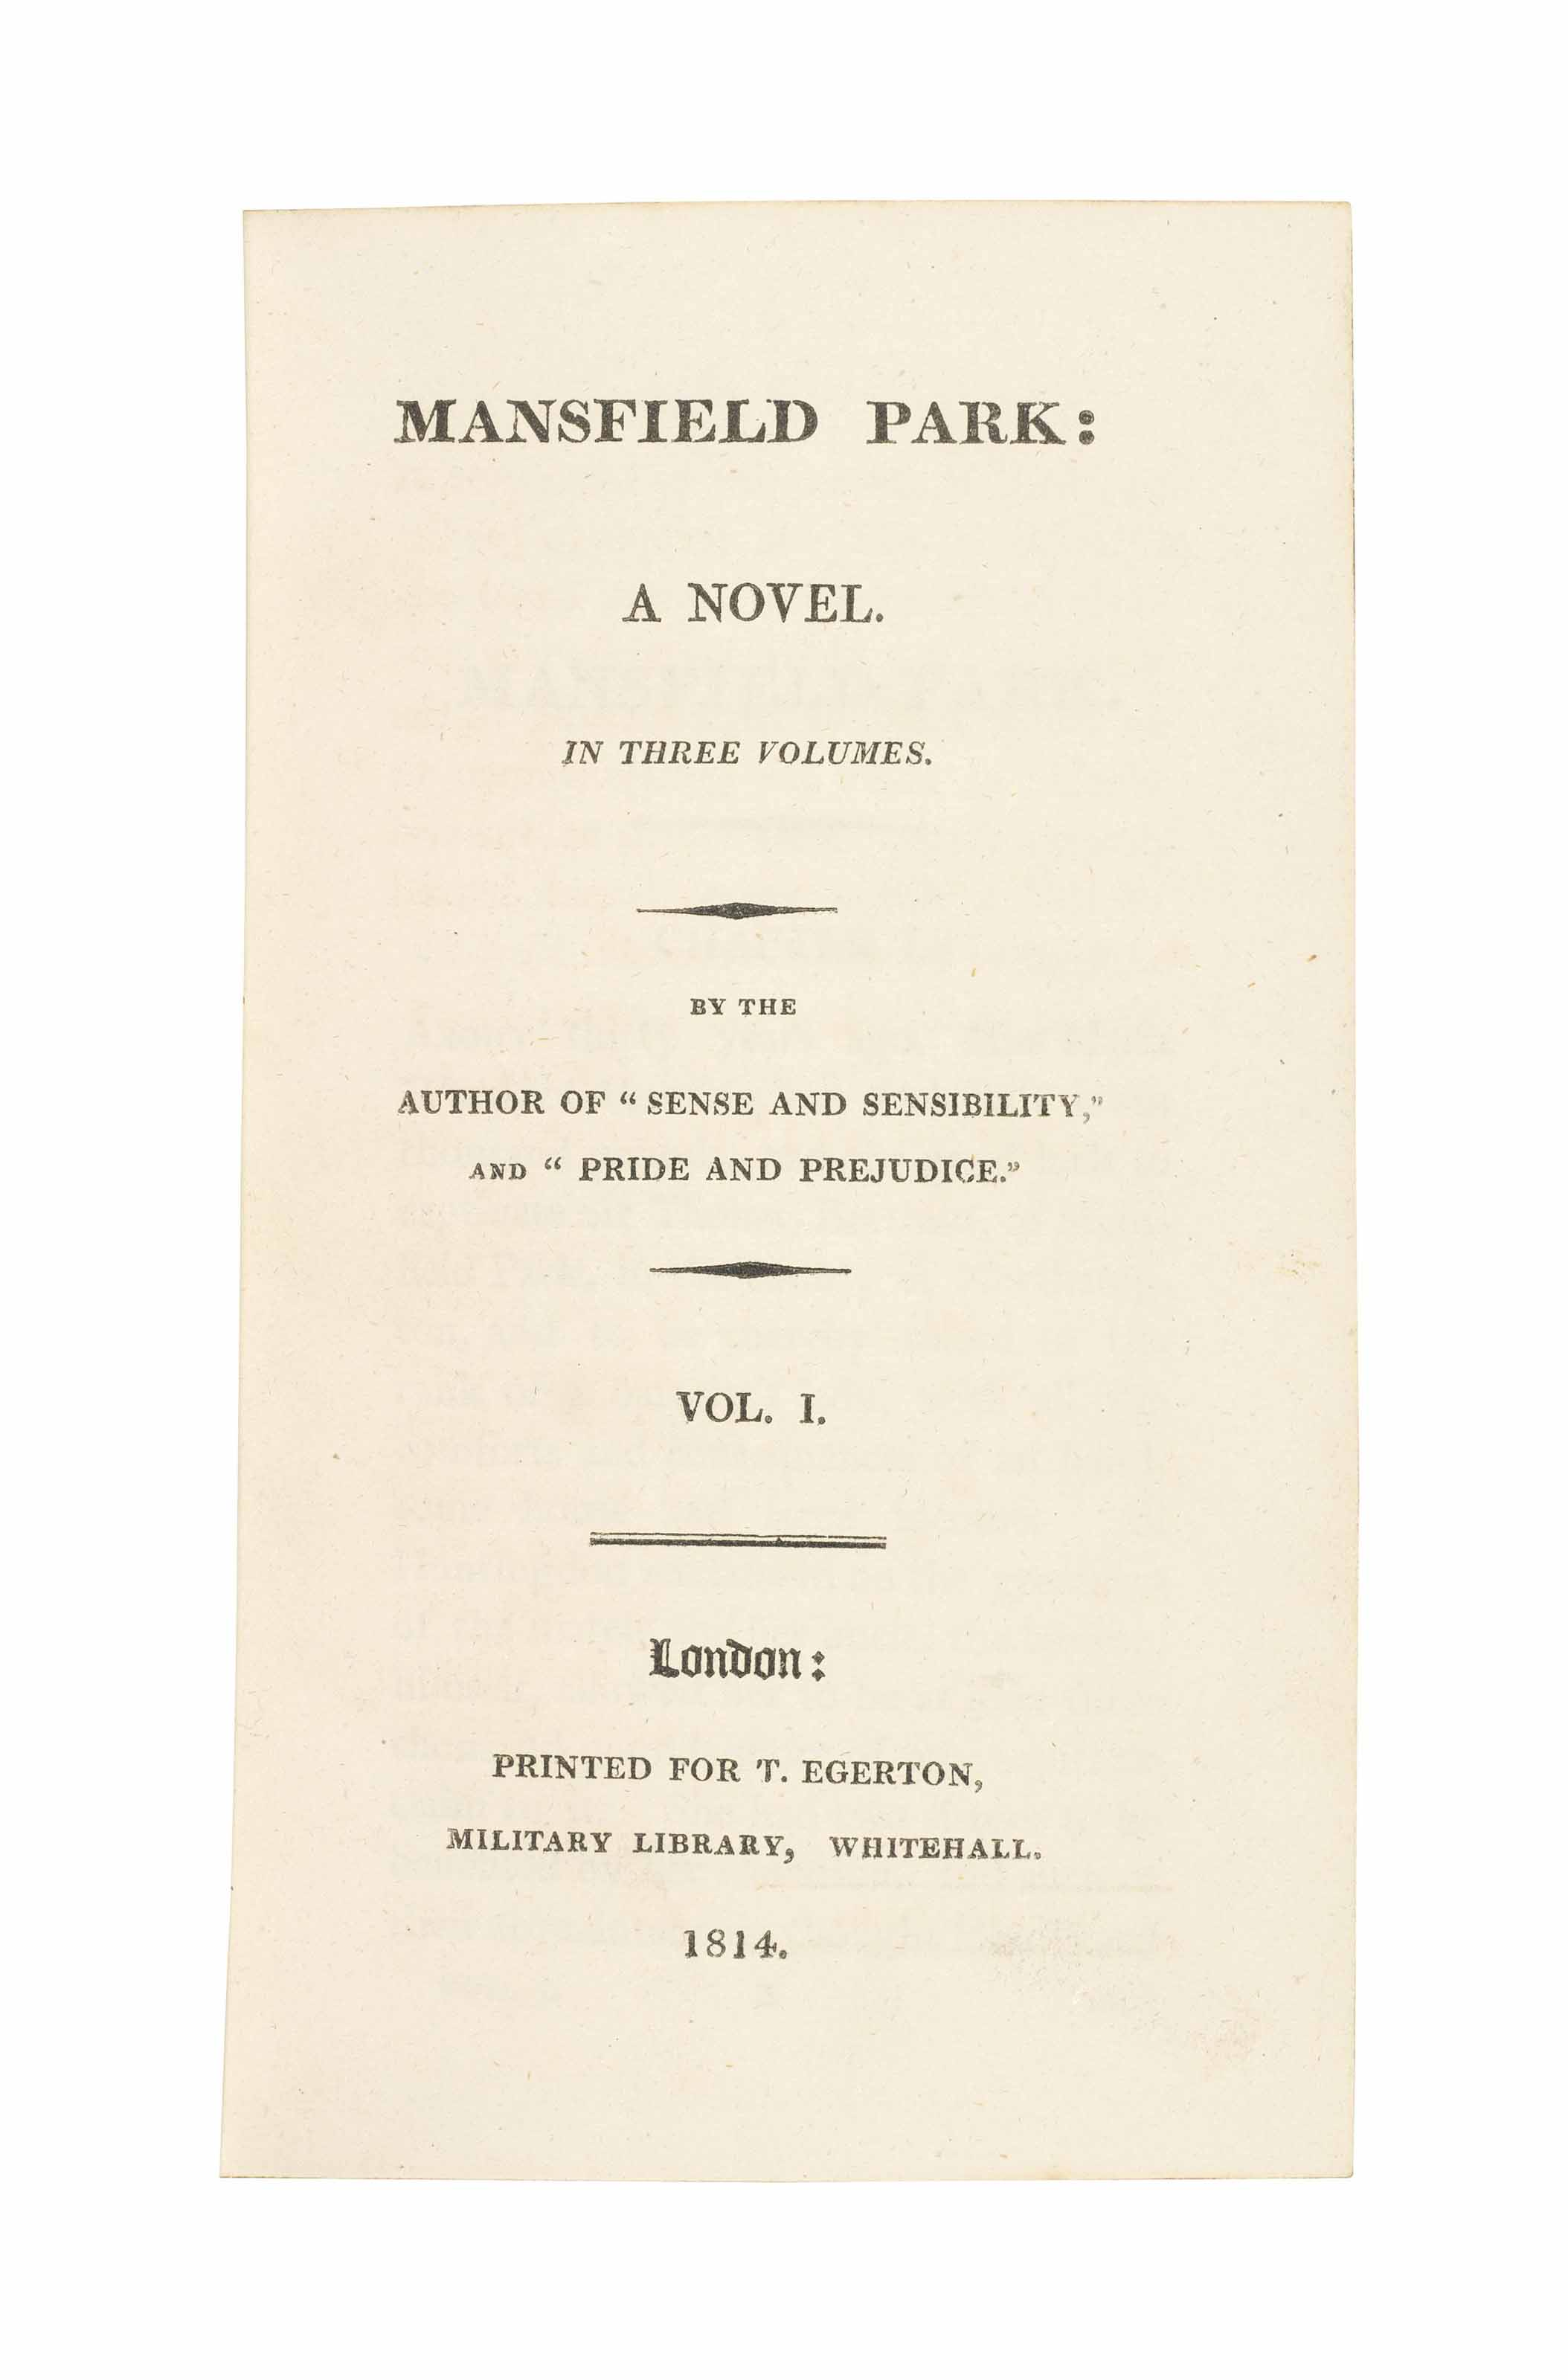 """[AUSTEN, Jane (1775-1817).] Mansfield Park: A Novel... By the Author of """"Sense and Sensibility,"""" and """"Pride and Prejudice."""" London: T. Egerton, 1814."""